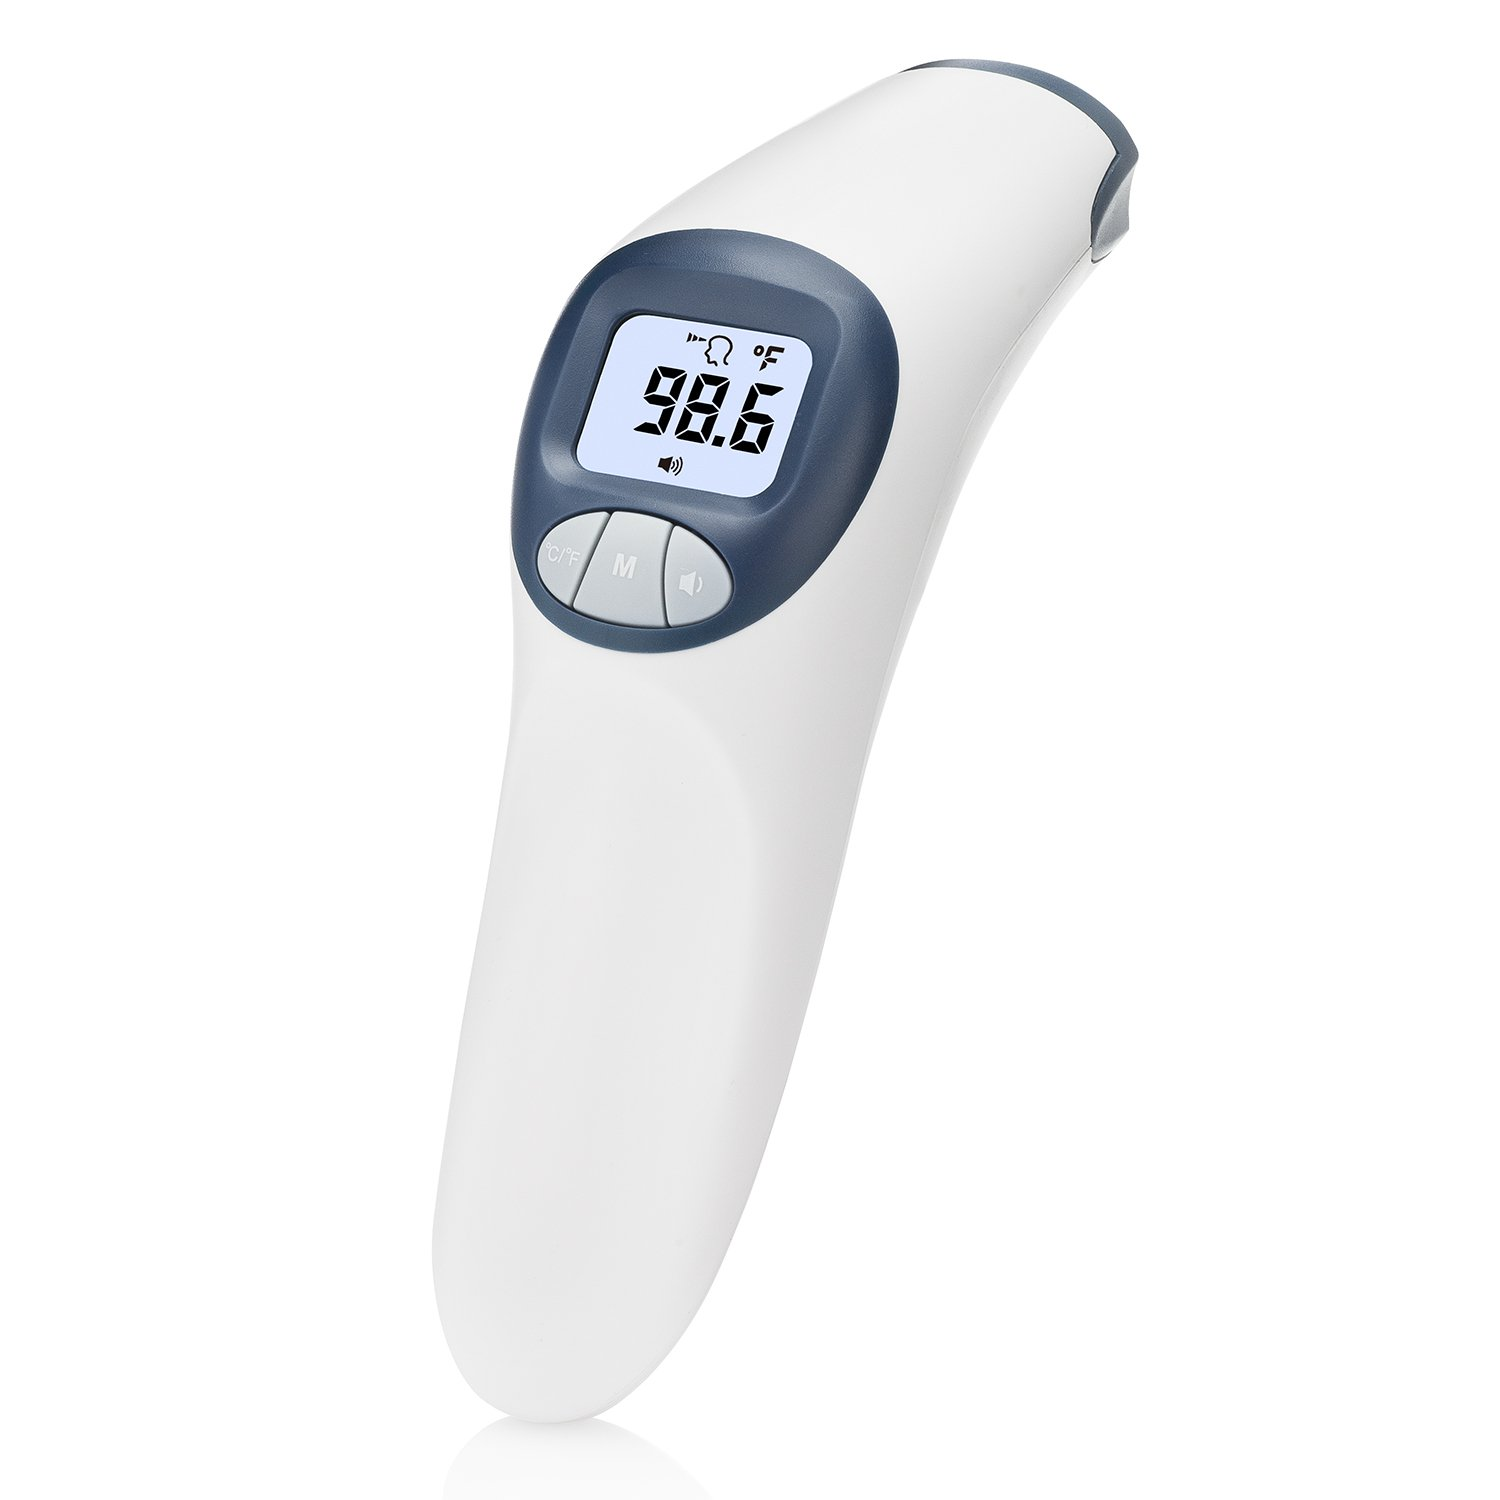 MeasuPro Non-Contact Forehead and Surface Thermometer with Customizable Fever Alert, Quiet Option and Large LCD Display, CE and FDA Approved IRT350